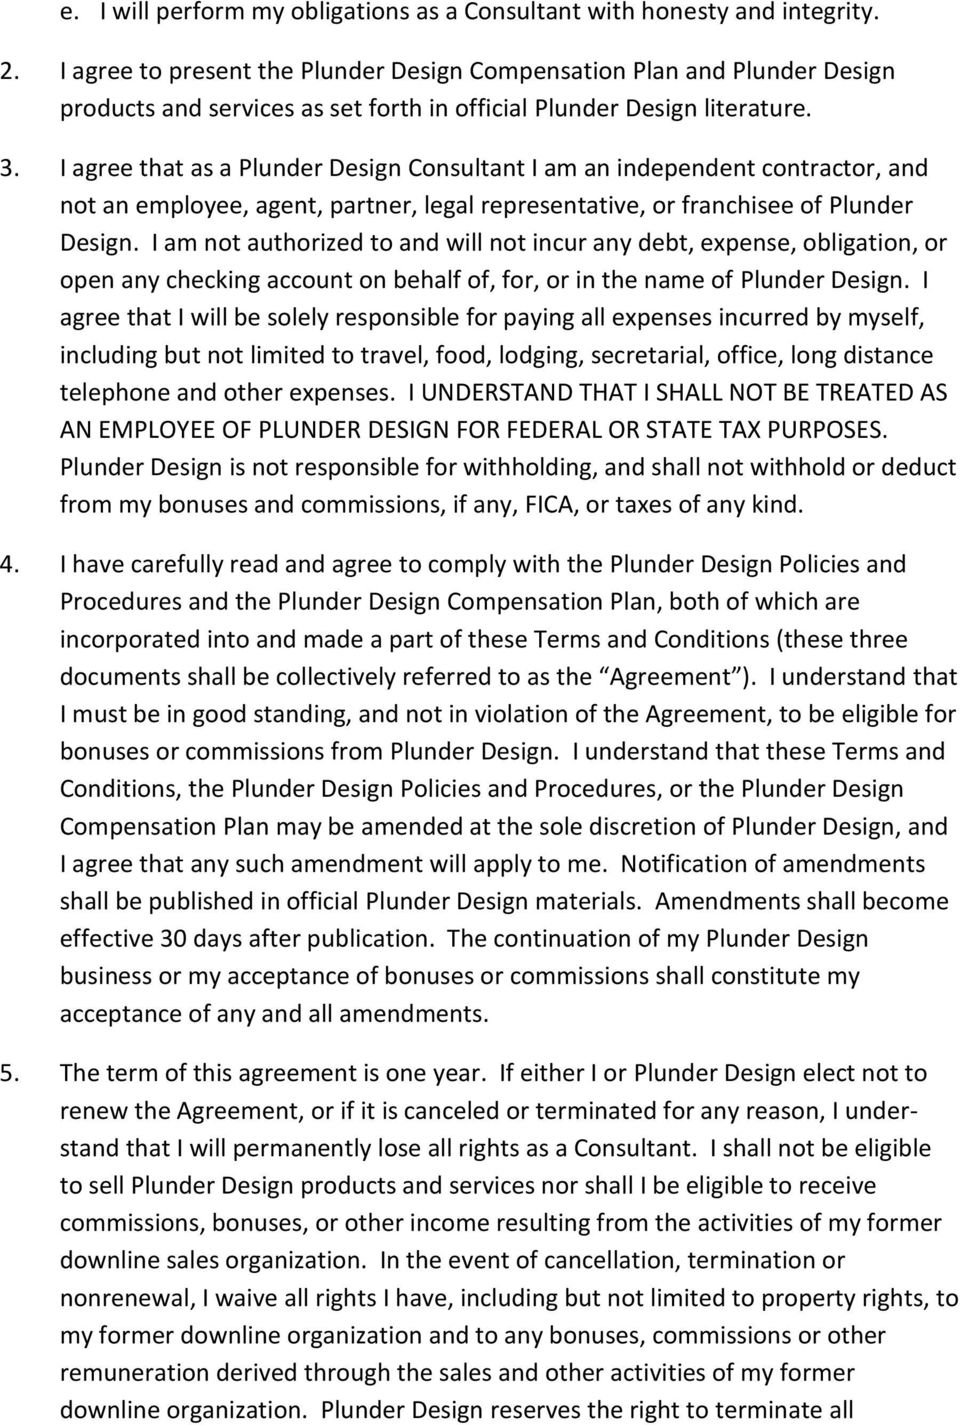 I agree that as a Plunder Design Consultant I am an independent contractor, and not an employee, agent, partner, legal representative, or franchisee of Plunder Design.